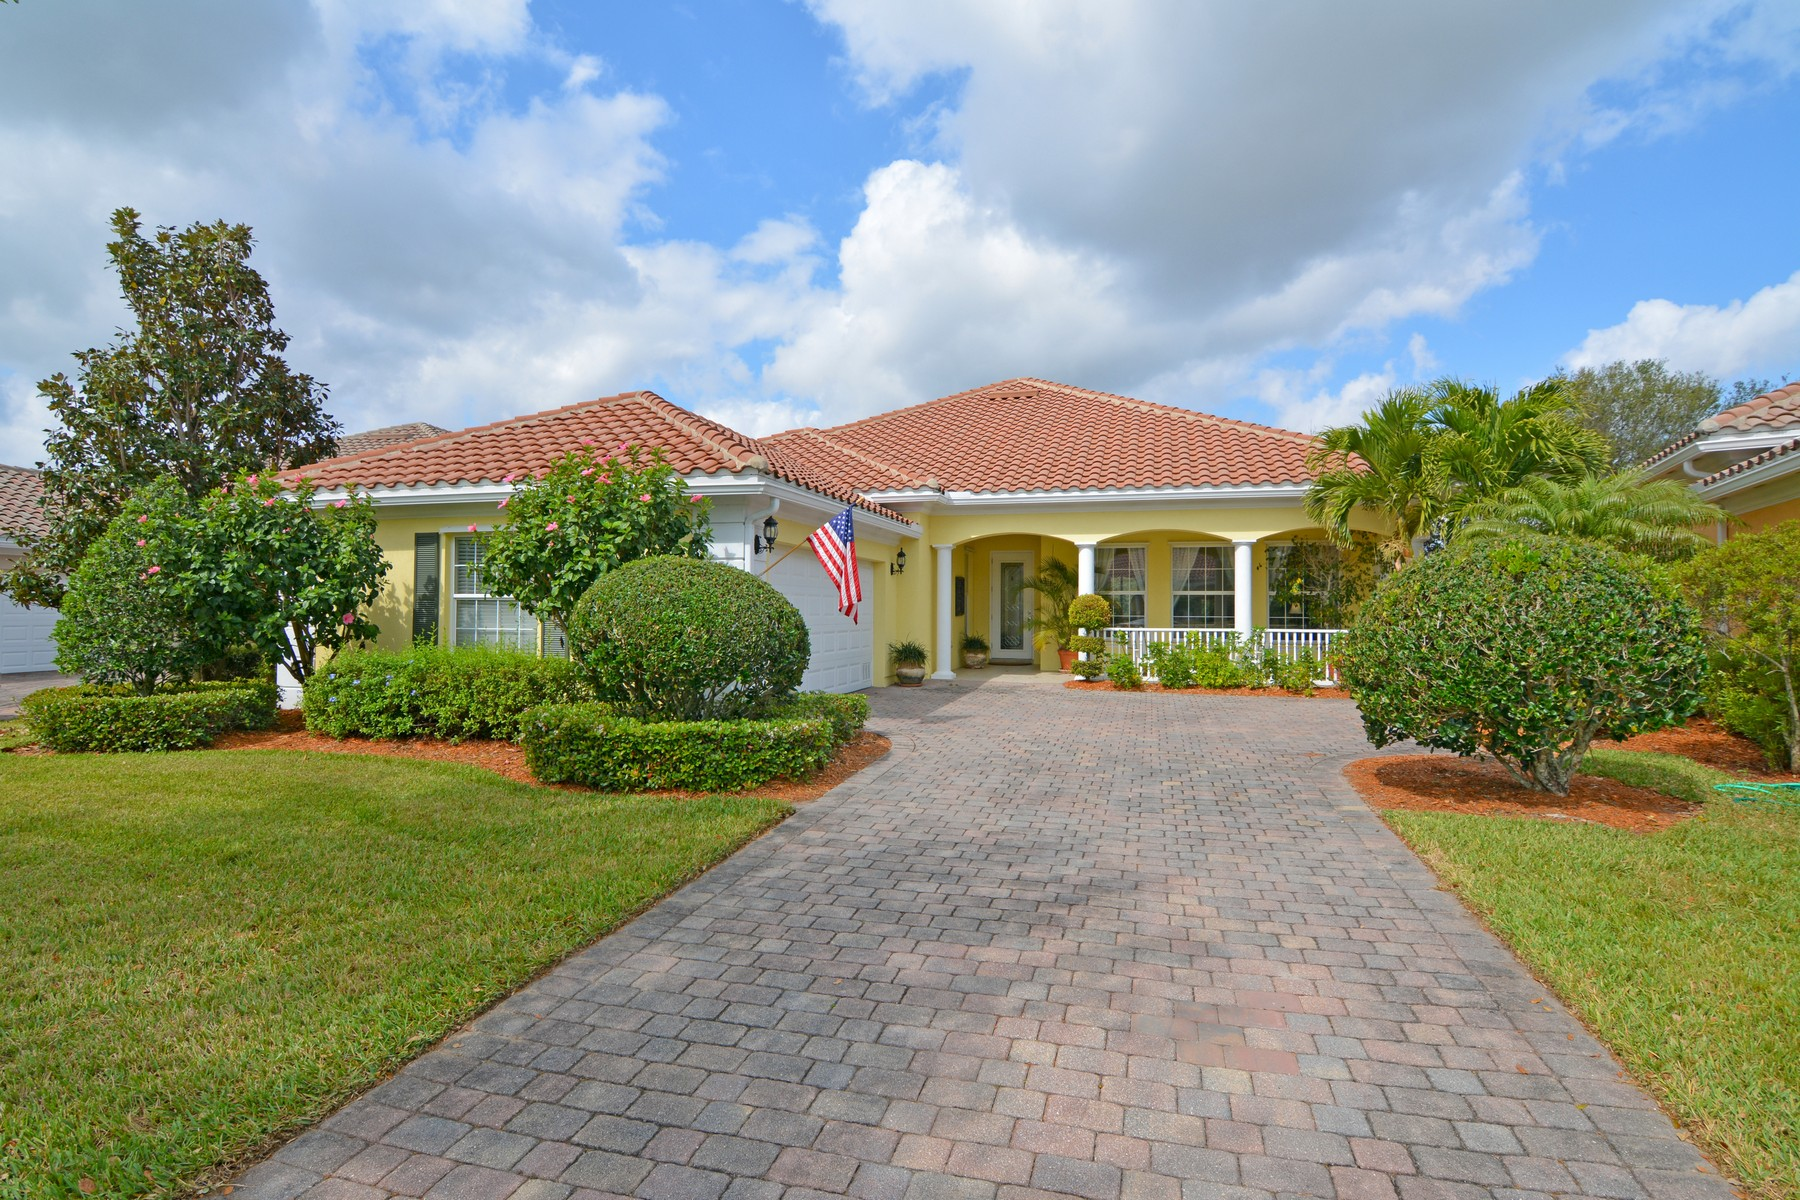 Single Family Home for Sale at Exceptional Lakefront Home 5445 Barbados Square Vero Beach, Florida 32967 United States